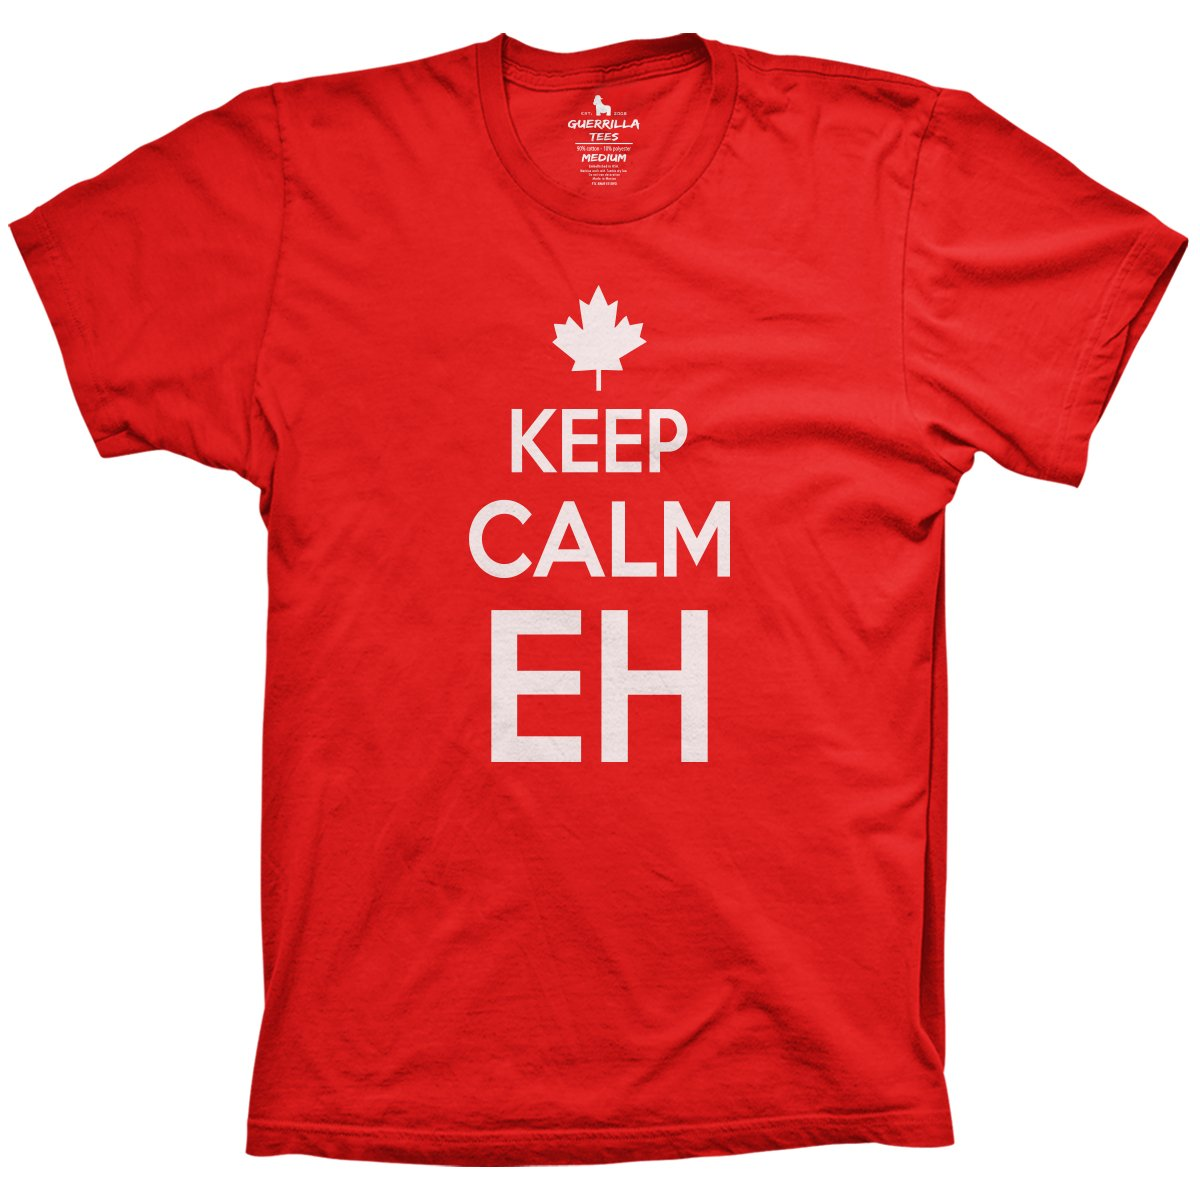 Funny Graphic Casual T-Shirts for Men /& Women Keep Calm Eh